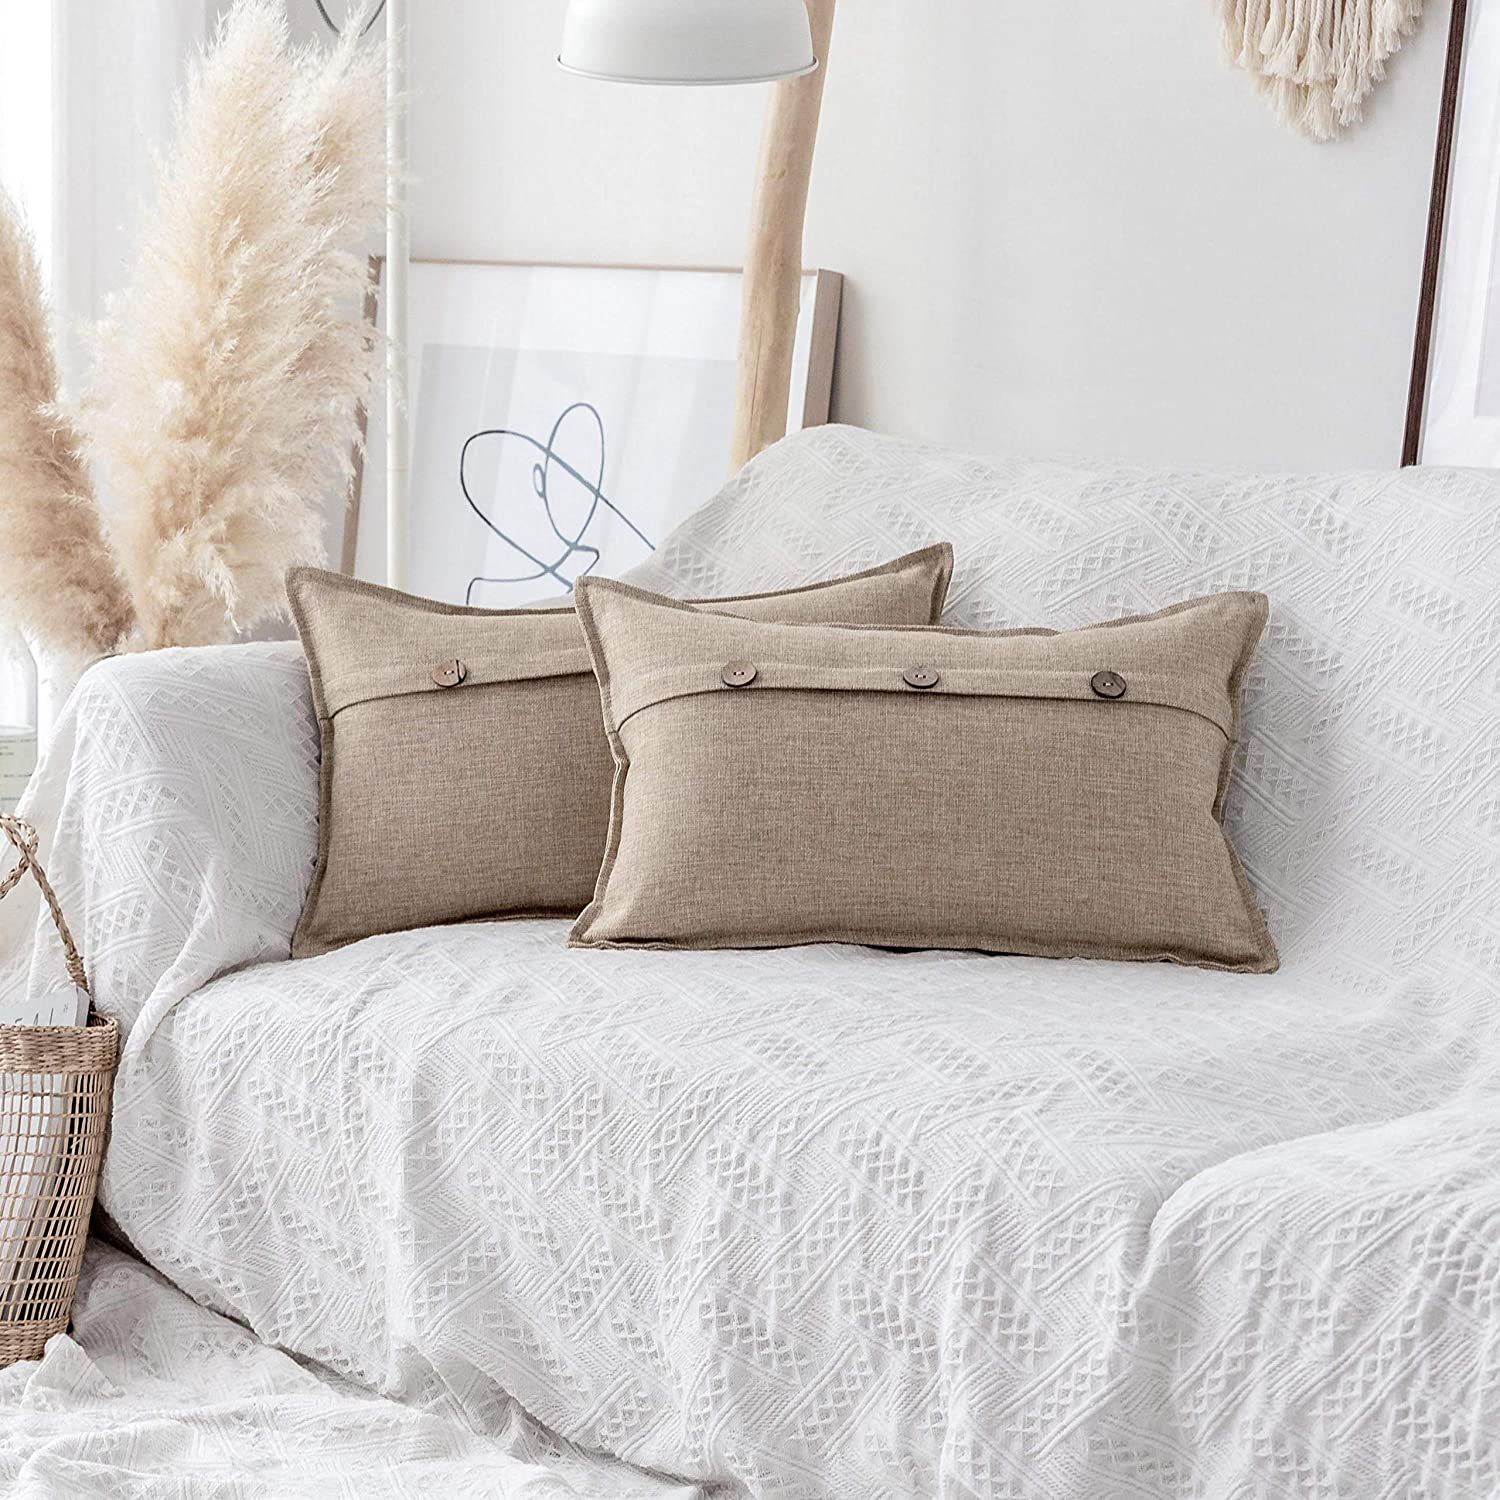 Credence Home Genuine Free Shipping Brilliant Linen Burlap Accent Throw Pillow Decorativ Covers